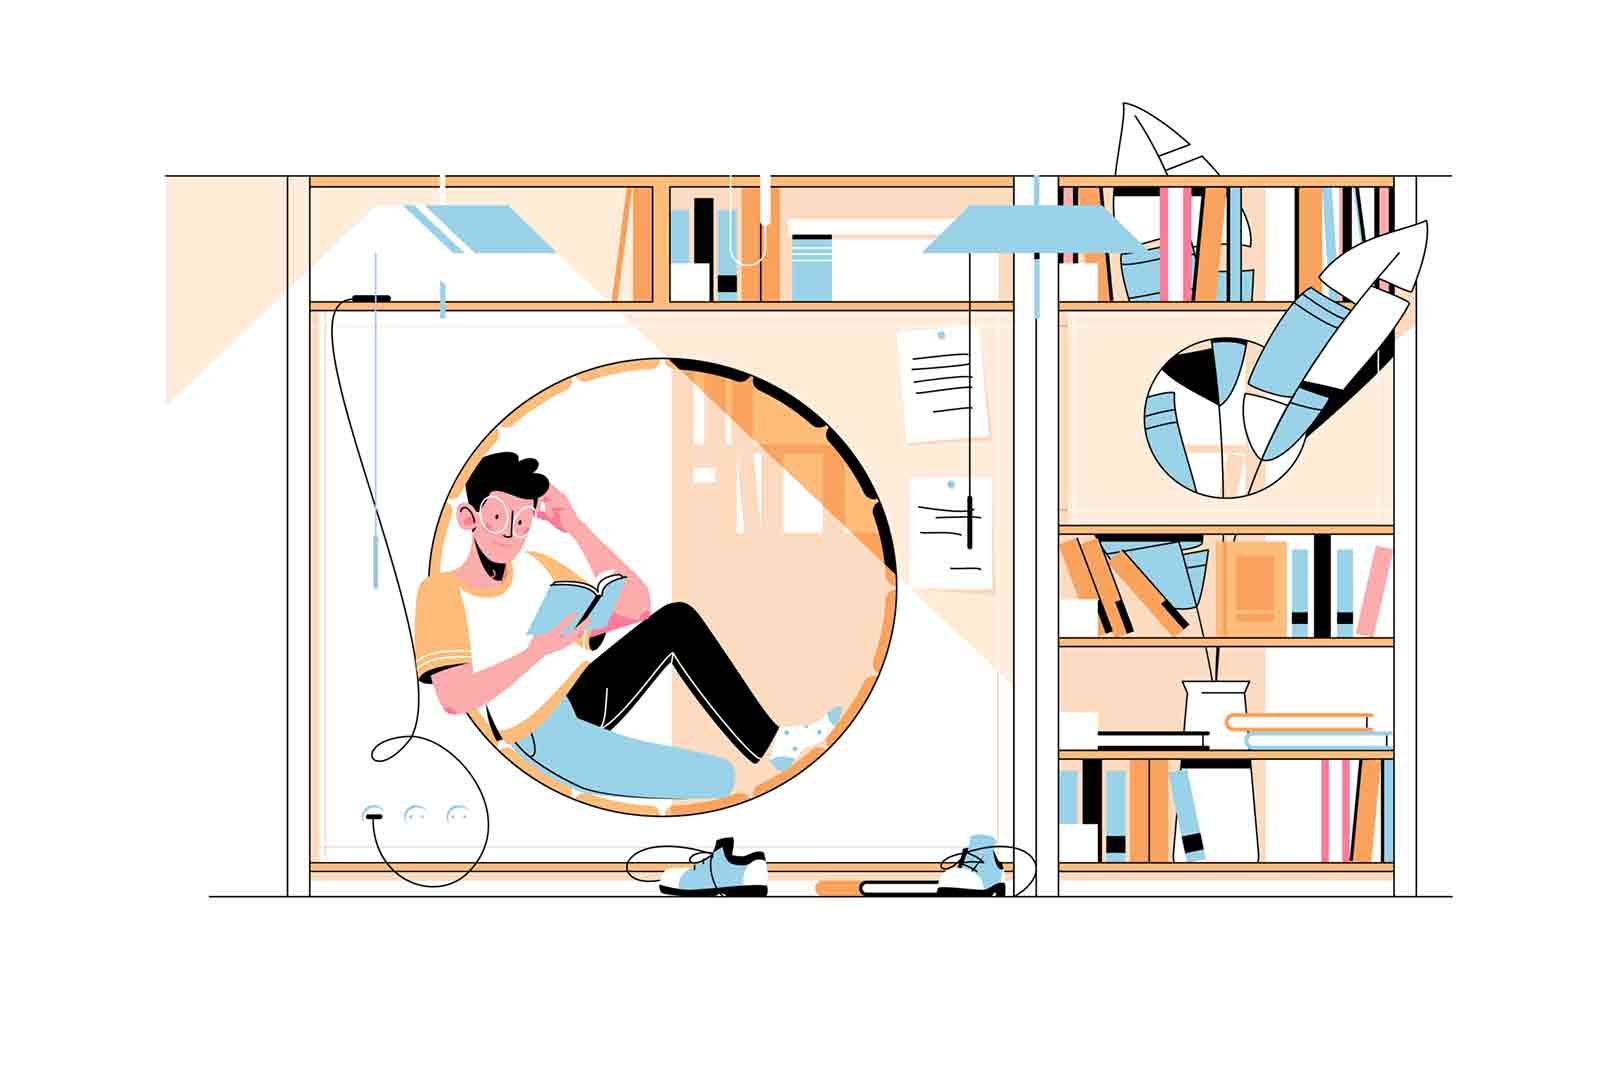 Guy in modern library vector illustration. Young man reading book sitting in round hole flat style. Collection of books on shelves. Development and hobby concept. Isolated on white background